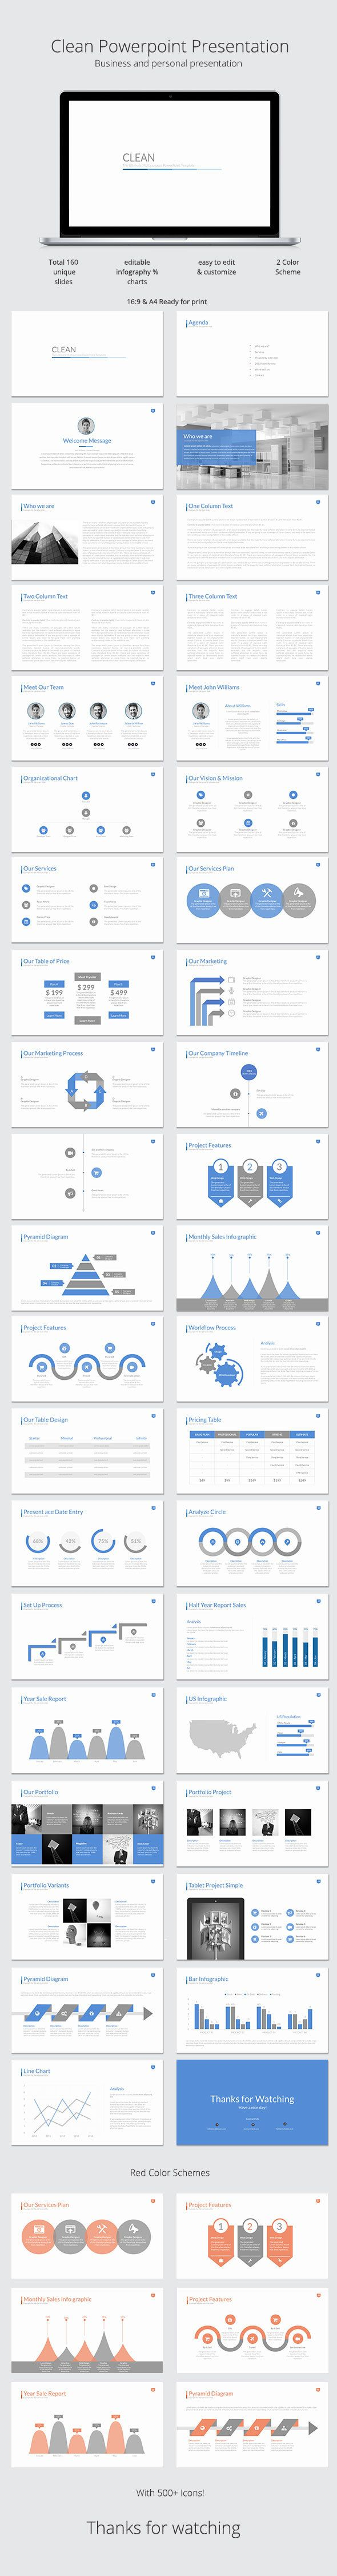 Coolmathgamesus  Outstanding  Ideas About Powerpoint Presentations On Pinterest With Lovely Clean Powerpoint Template With Nice Embed Excel Into Powerpoint Also Direct Variation Powerpoint In Addition Open Microsoft Powerpoint And Cool Background For Powerpoint As Well As Jack Graham Powerpoint Ministries Additionally Pressure Ulcer Prevention Powerpoint From Pinterestcom With Coolmathgamesus  Lovely  Ideas About Powerpoint Presentations On Pinterest With Nice Clean Powerpoint Template And Outstanding Embed Excel Into Powerpoint Also Direct Variation Powerpoint In Addition Open Microsoft Powerpoint From Pinterestcom